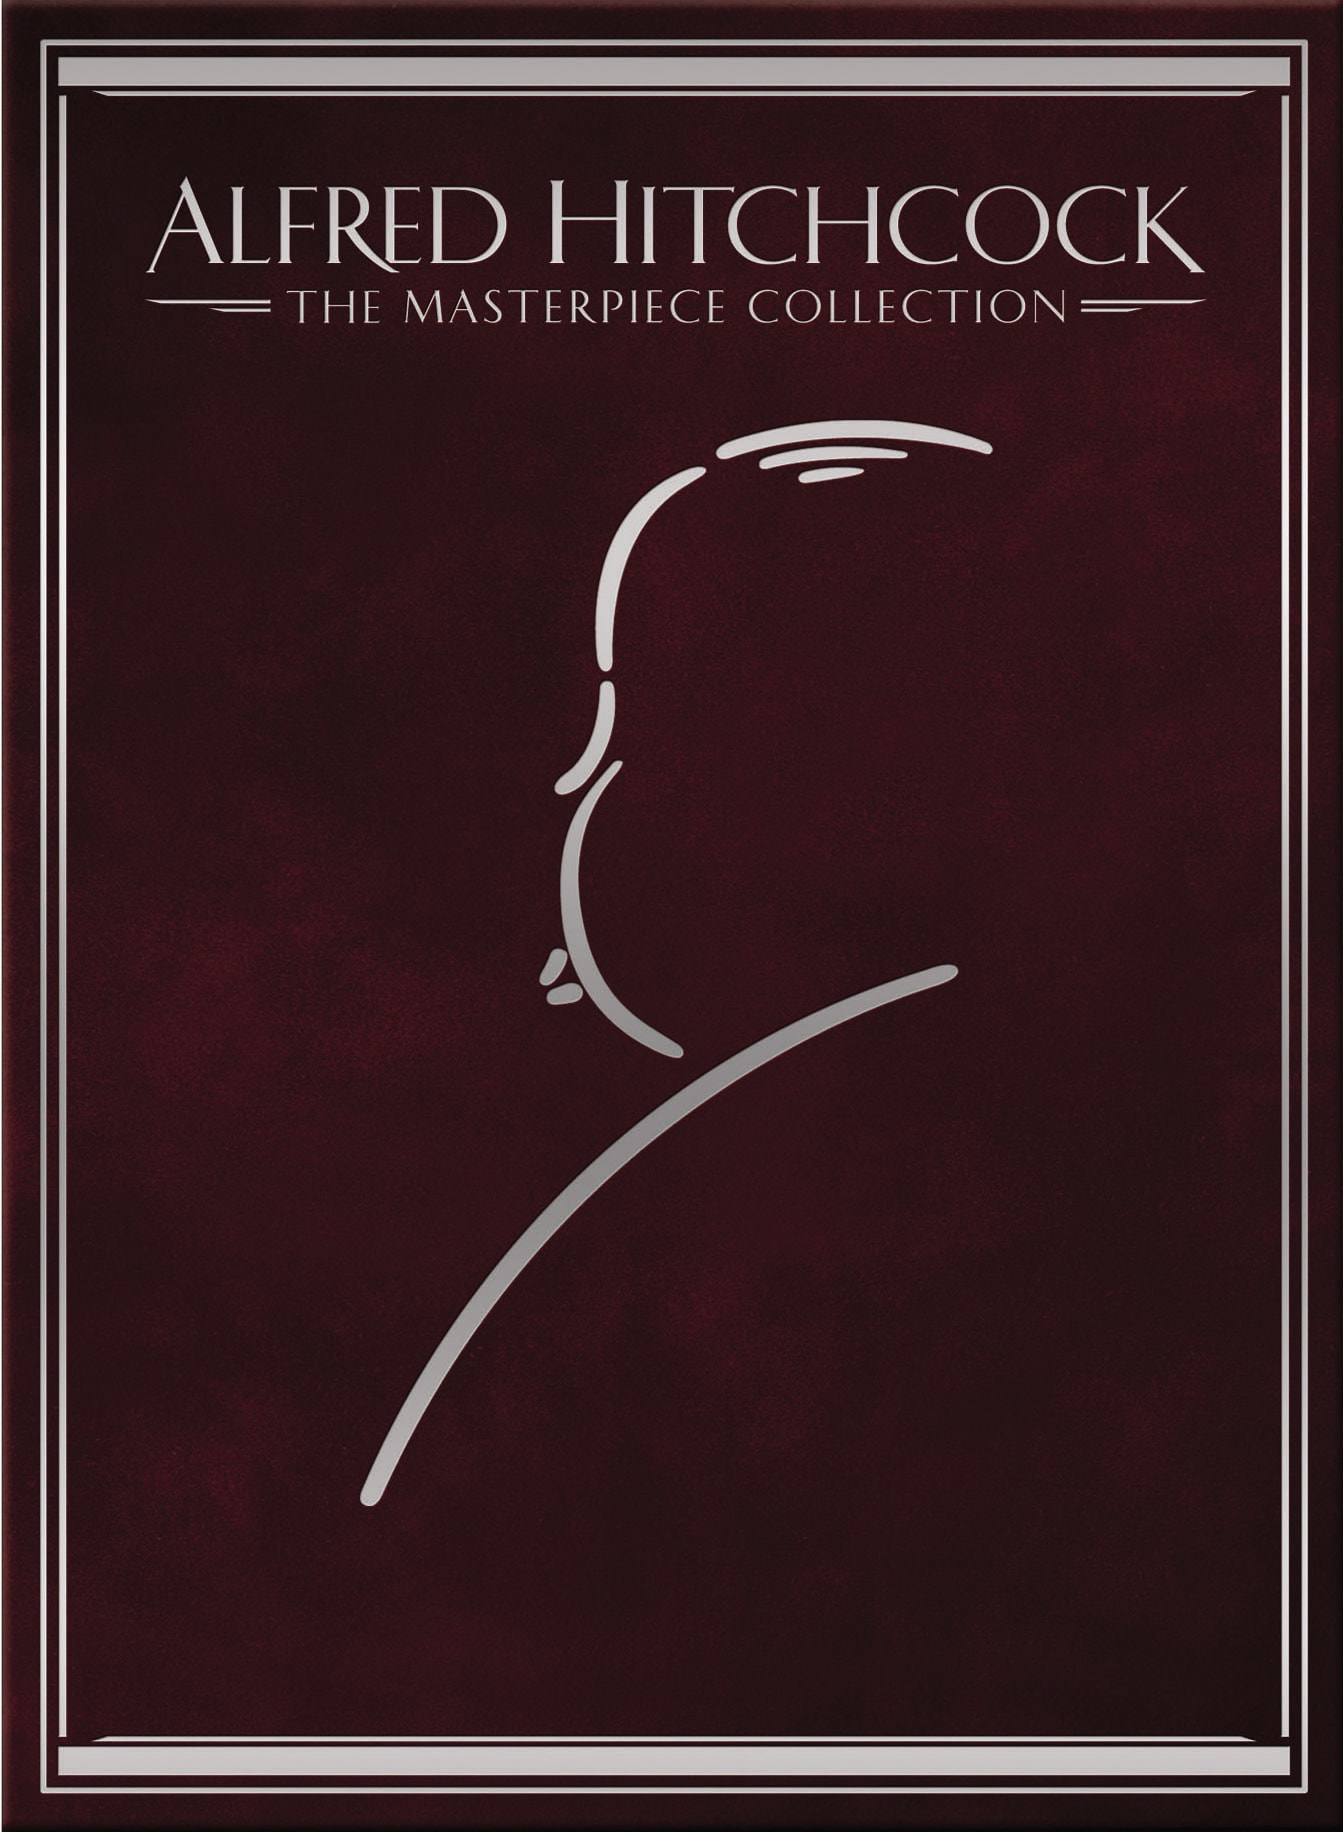 Alfred Hitchcock: The Masterpiece Collection (Limited Edition) [DVD]